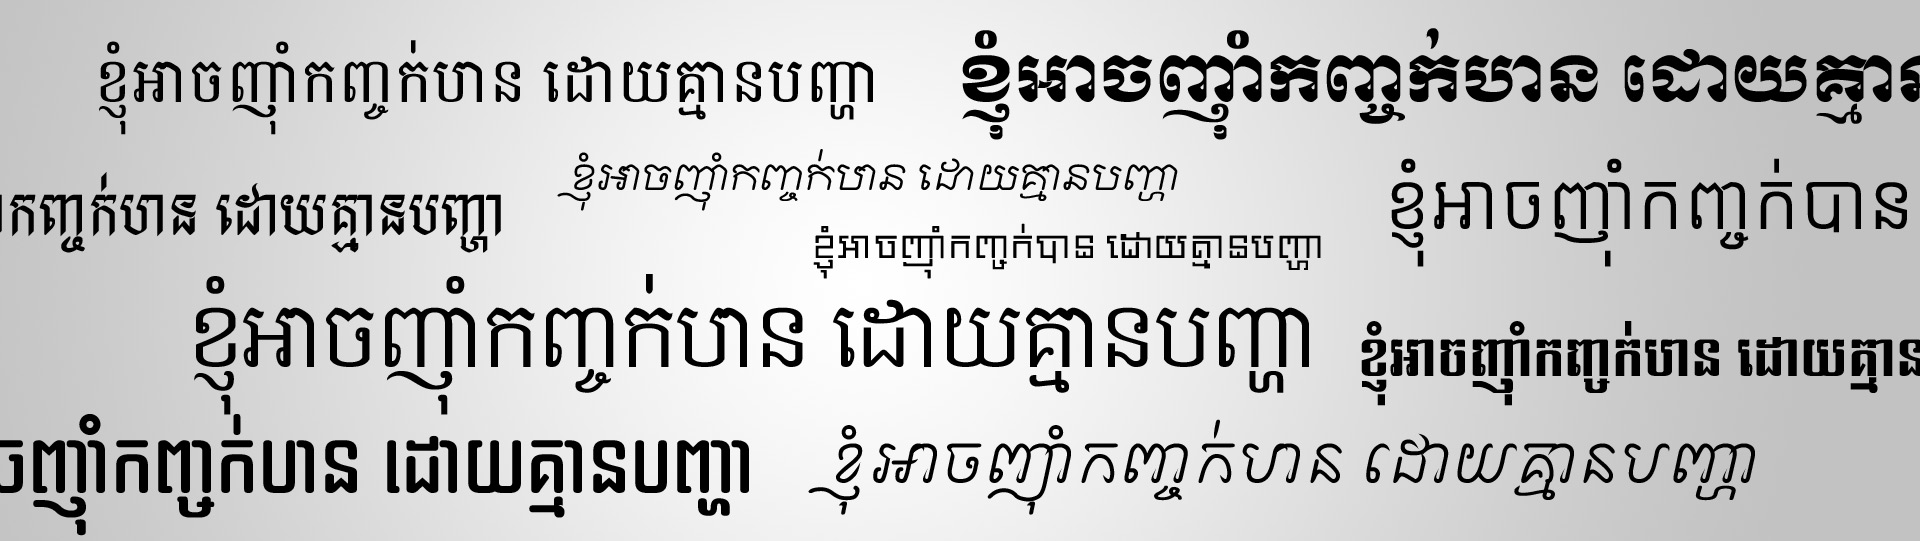 download-all-khmer-fonts